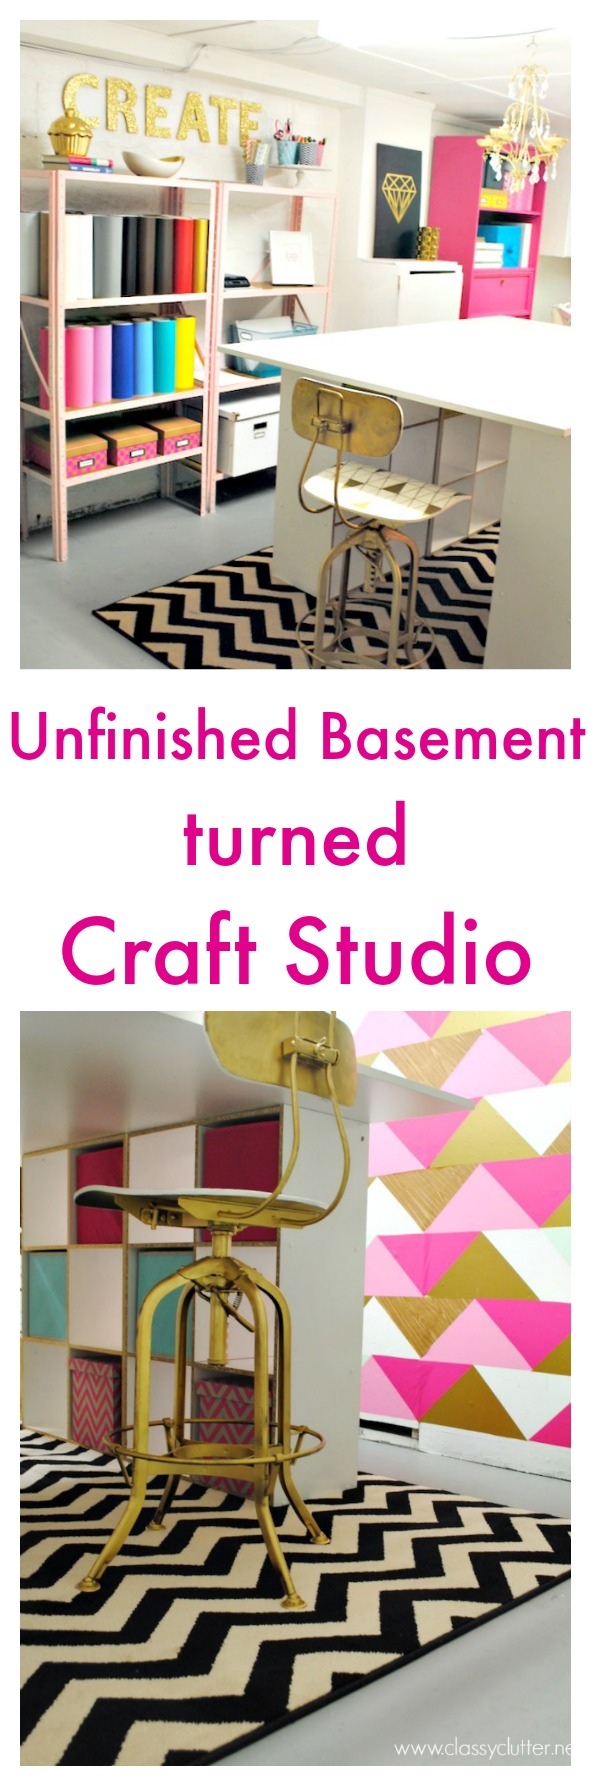 Unfinished Basement turned Craft Studio - www.classyclutter.net